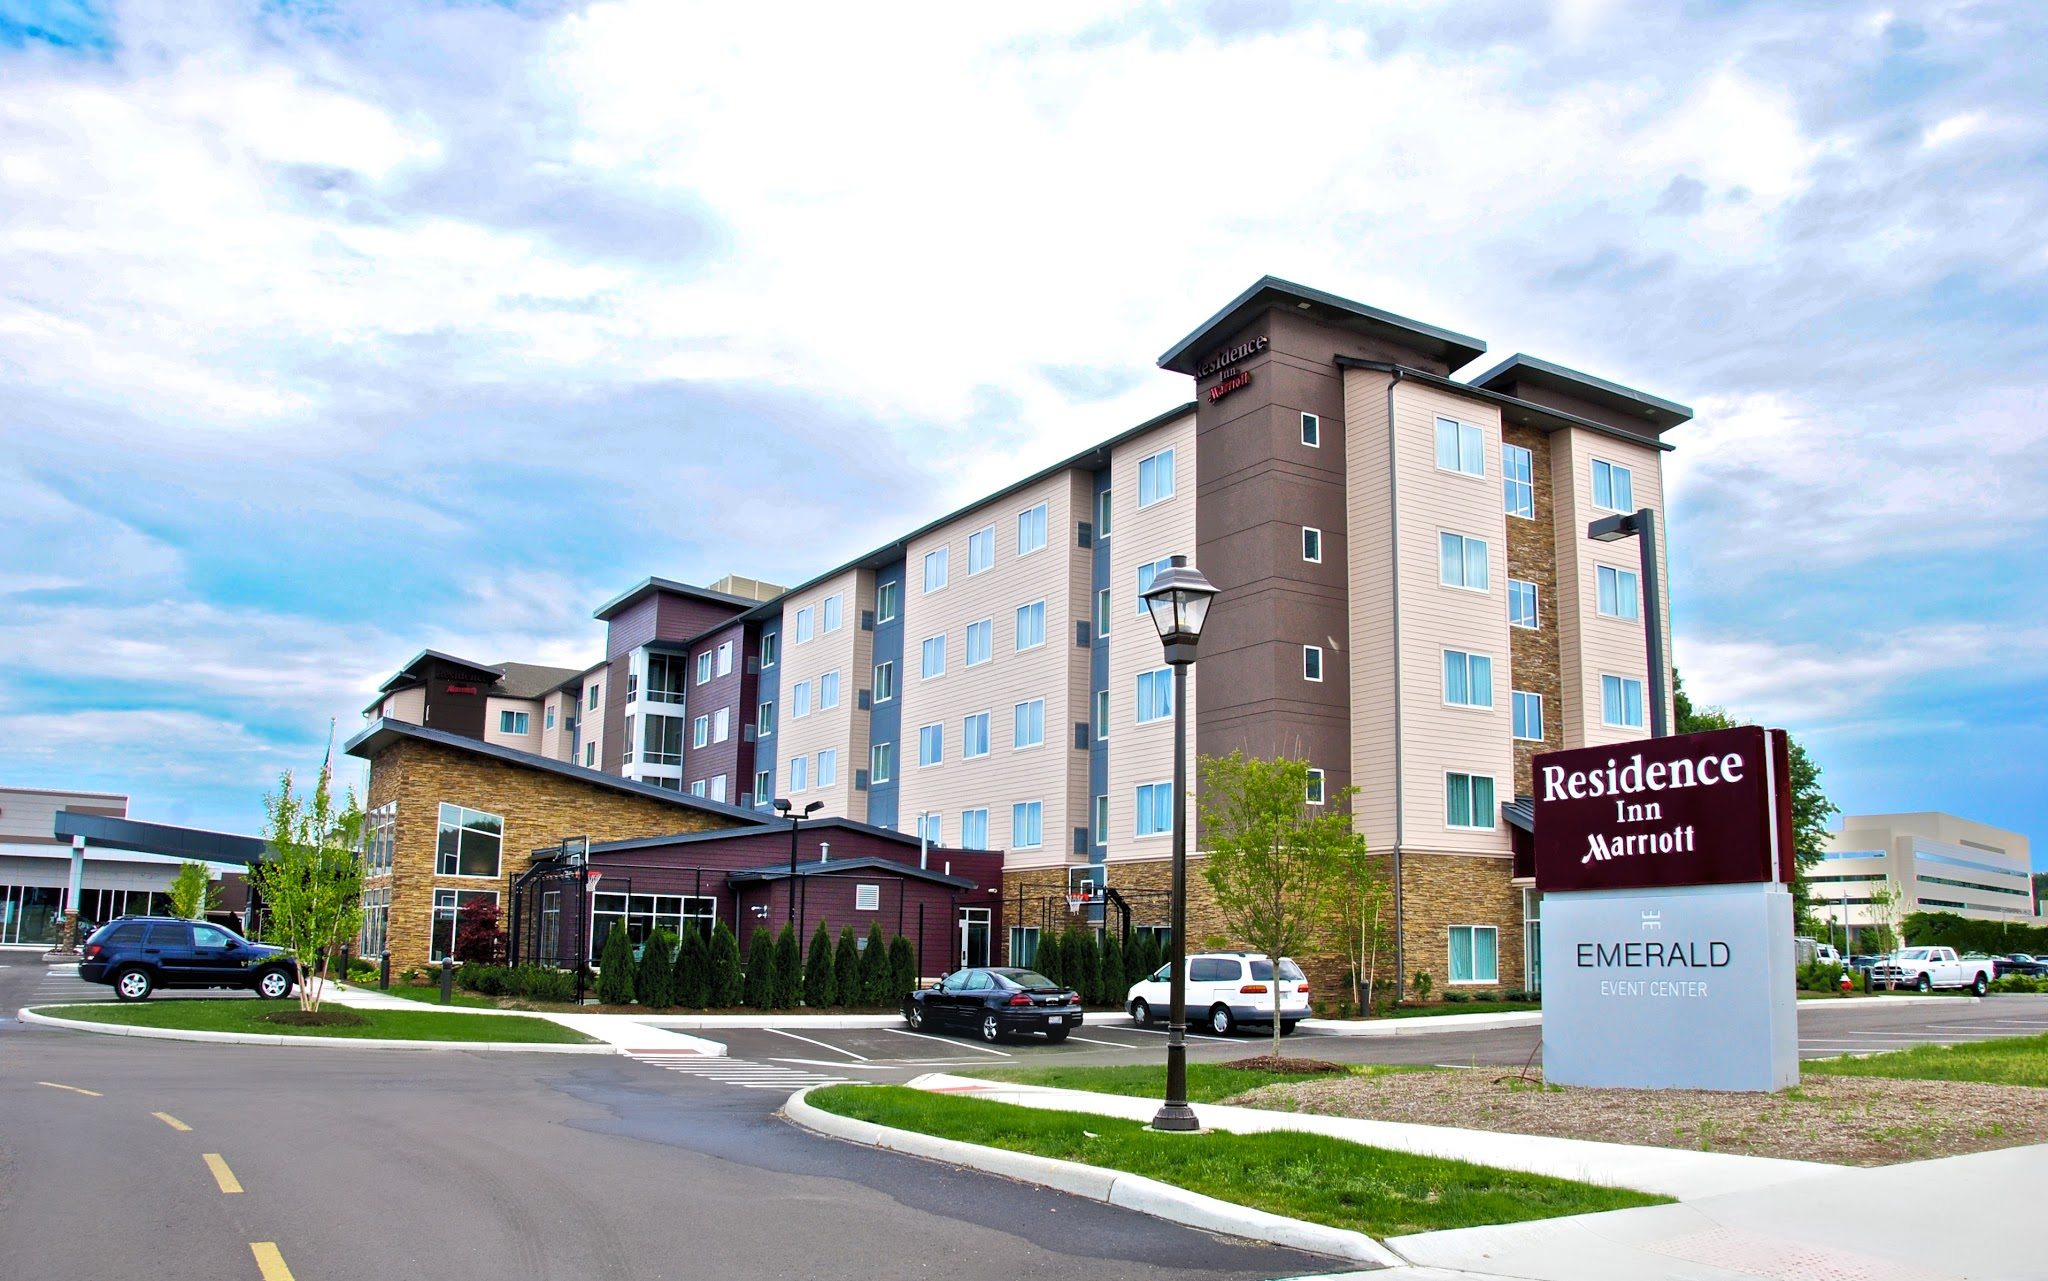 Residence Inn by Marriott Cleveland Avon at The Emerald Event Center image 0